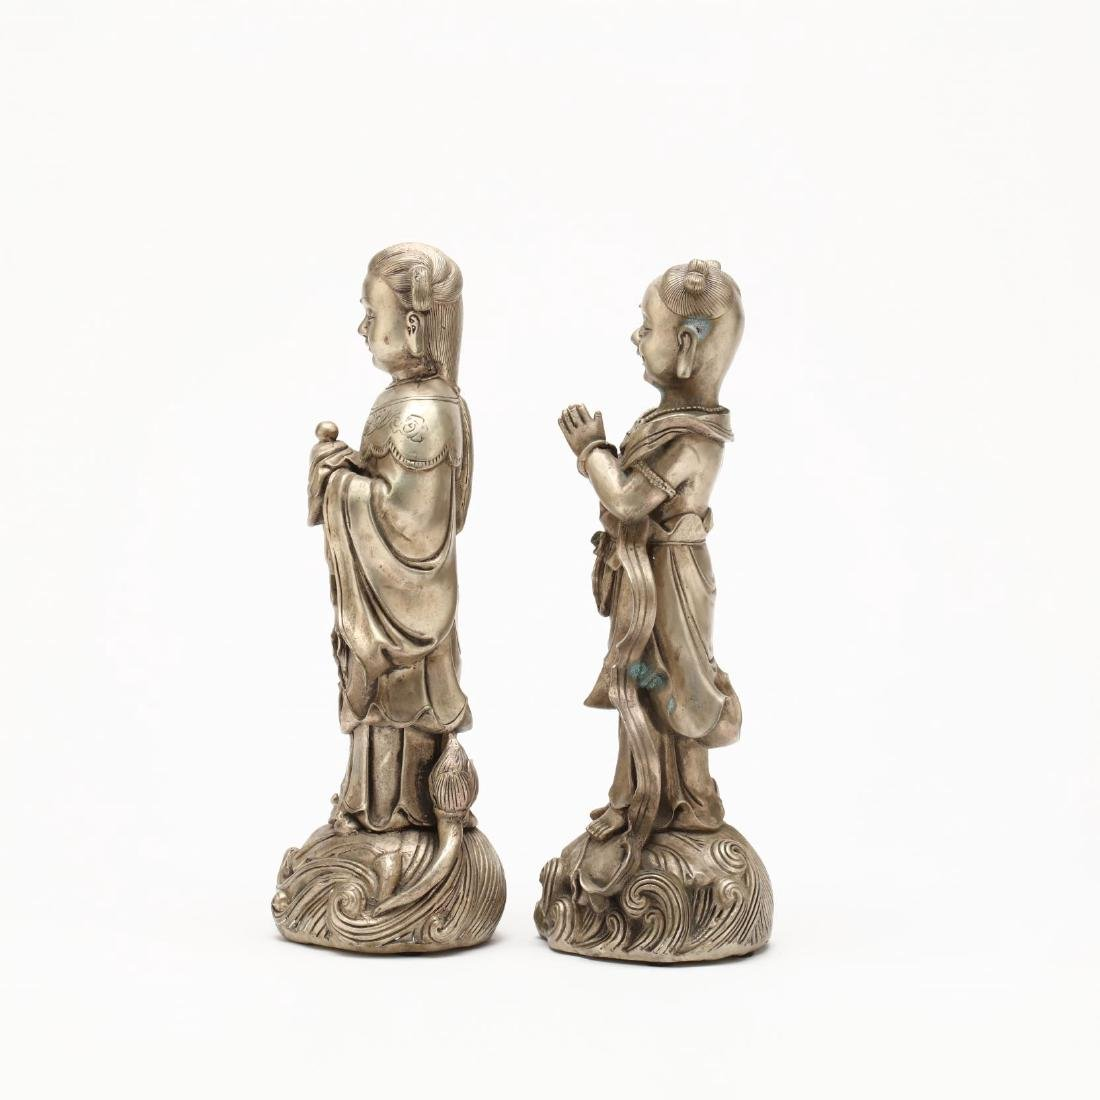 A Pair of Chinese Silvered Brass Statues - 4